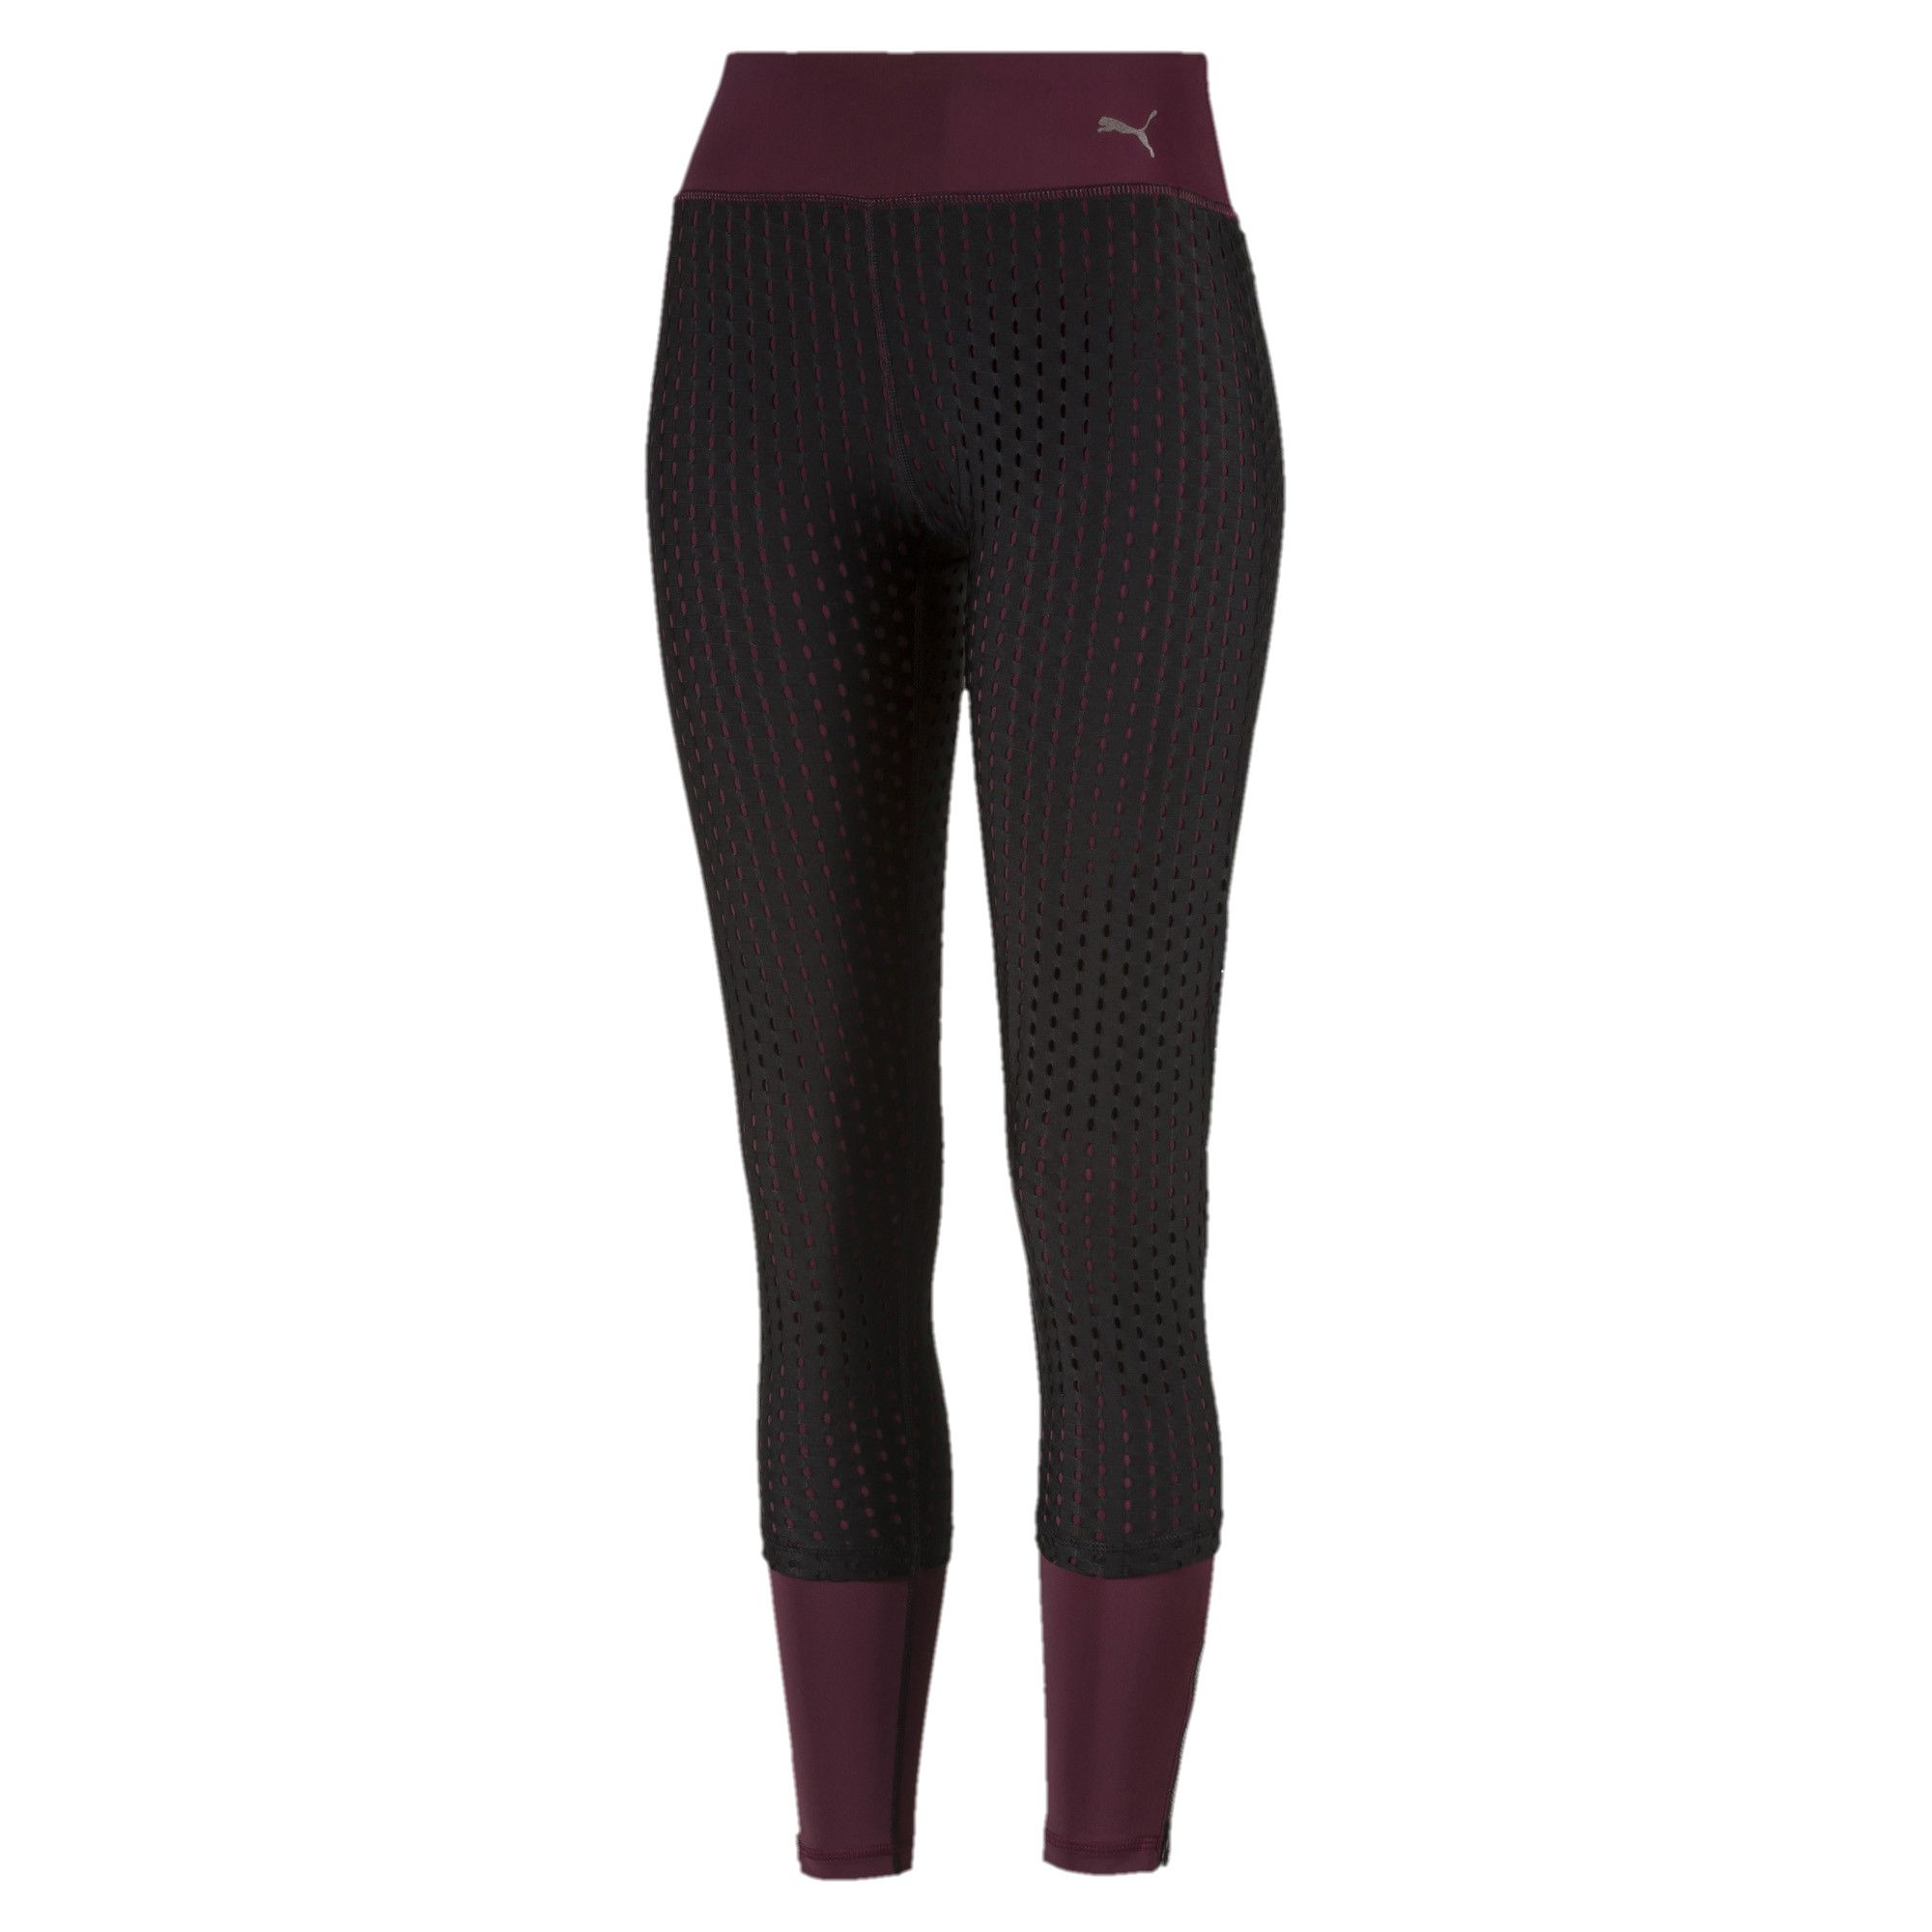 Calça legging Puma luxe mesh tight - Original